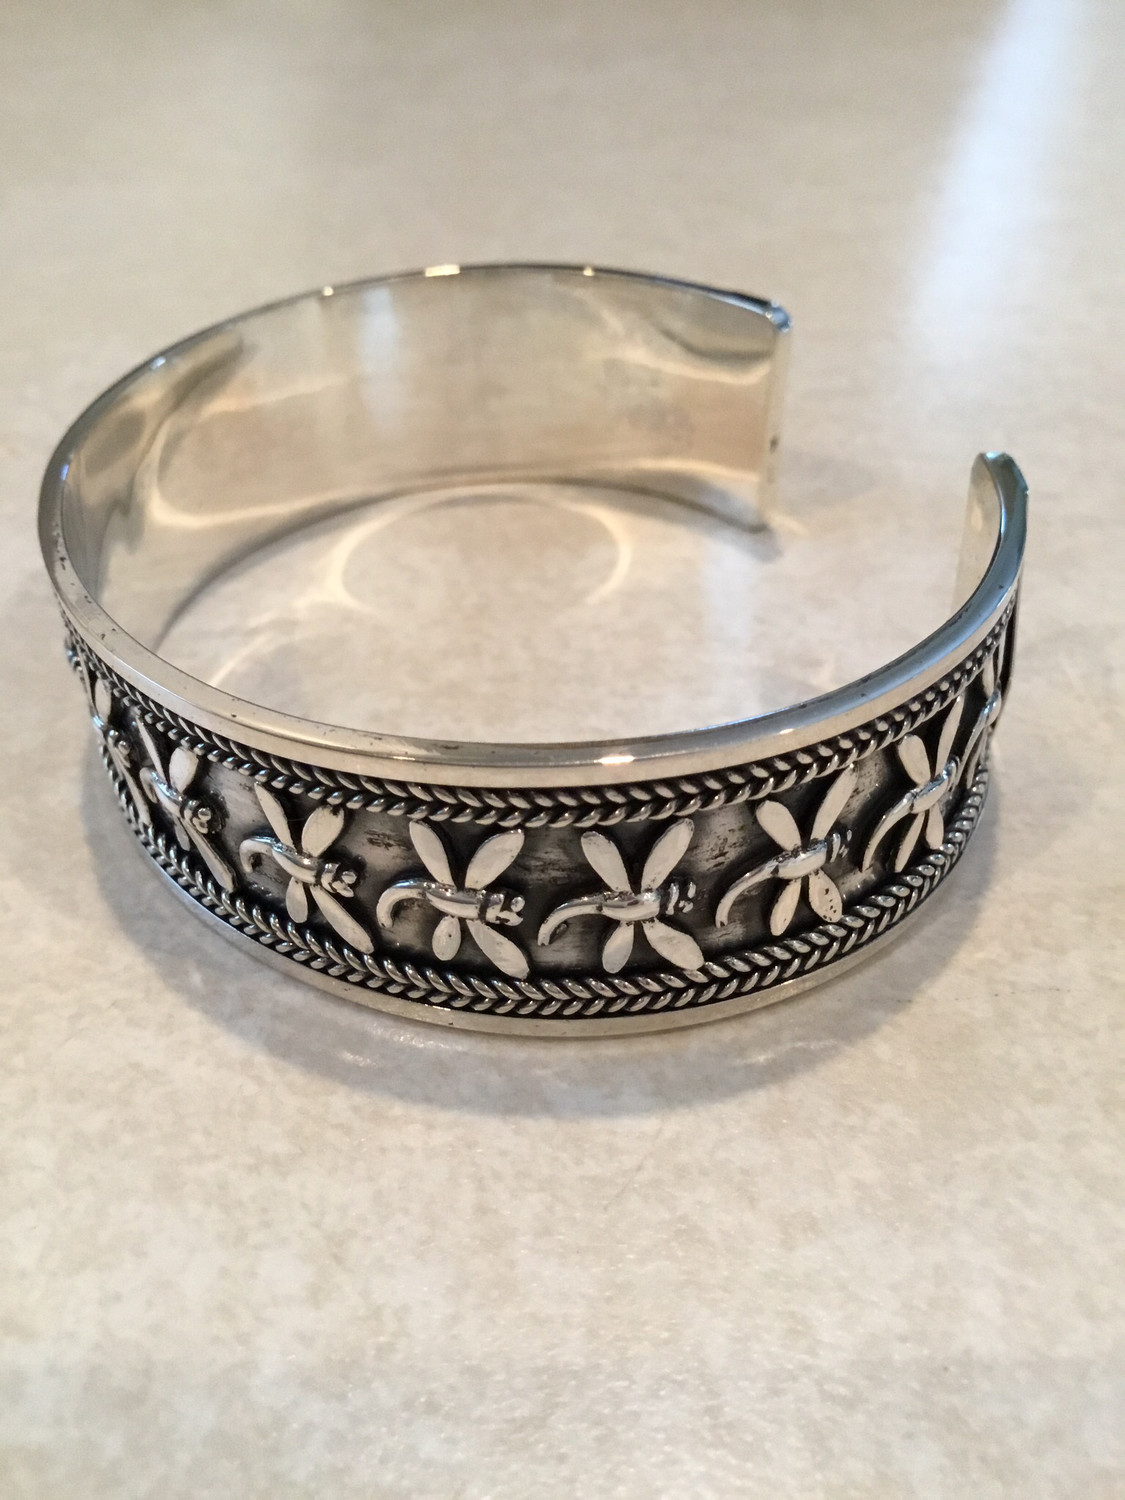 Beautiful Sterling Silver Cuff Designed With Dragonflies Circling